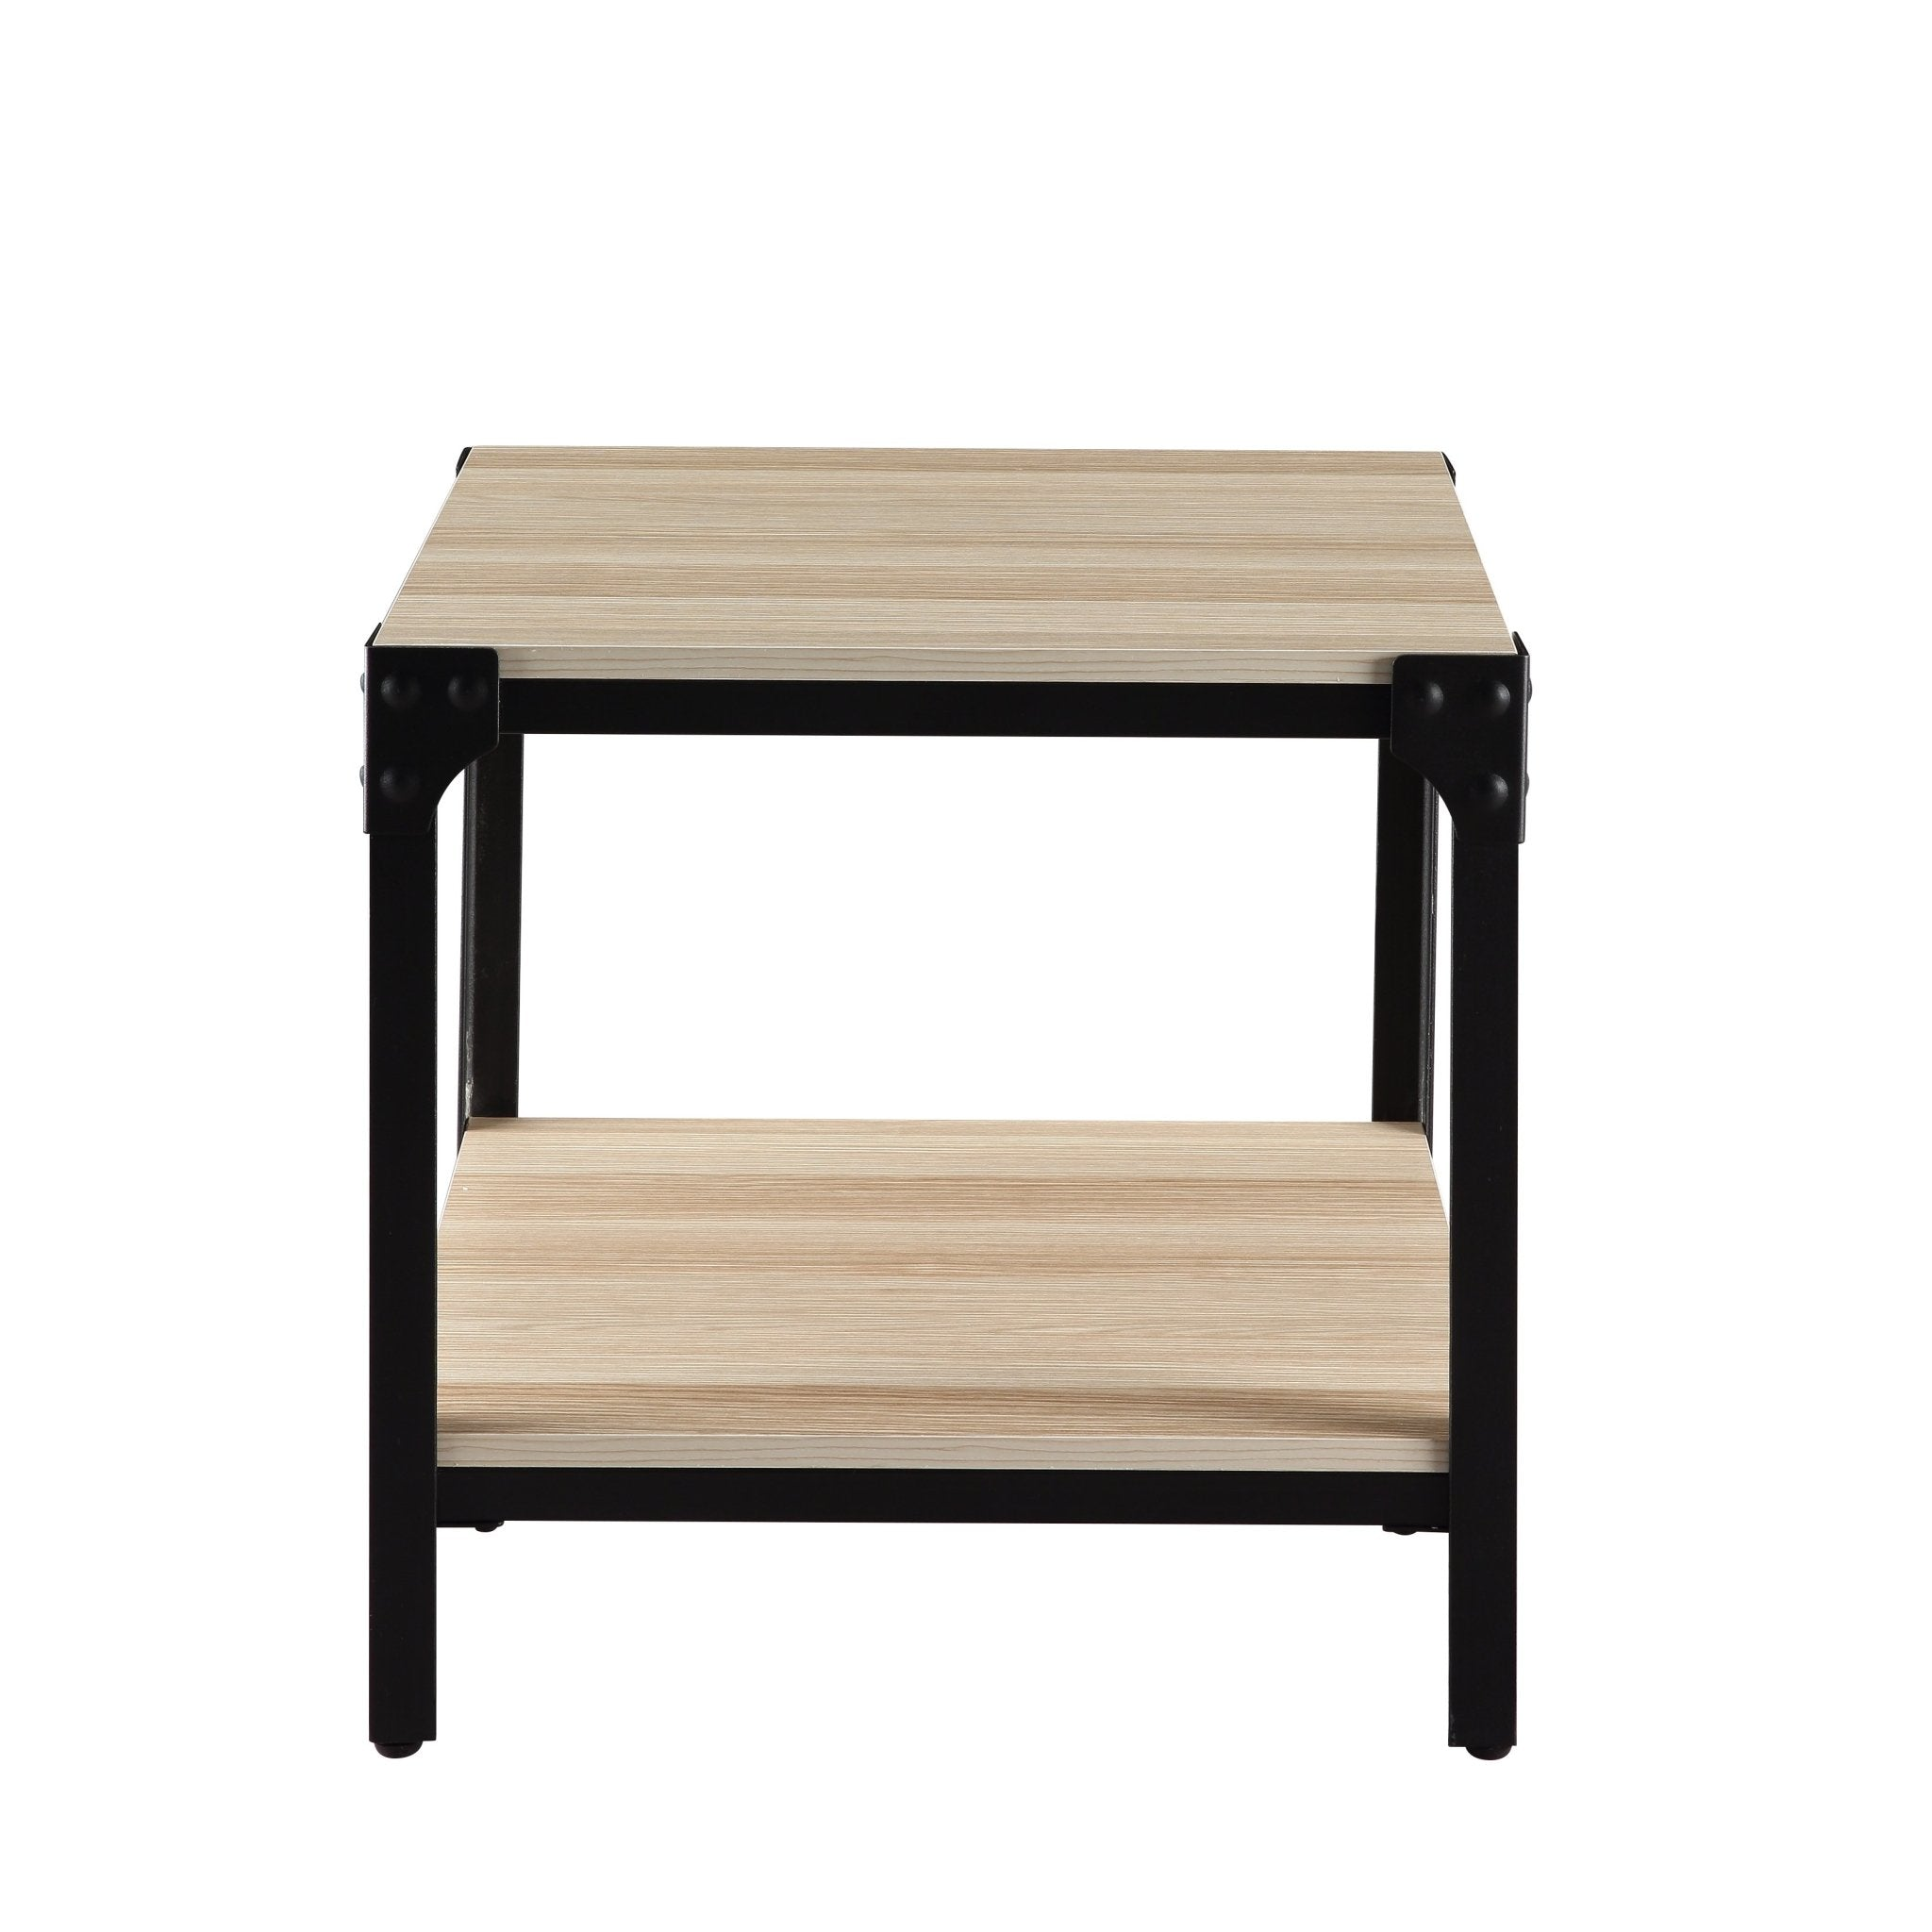 Lainey End Table.